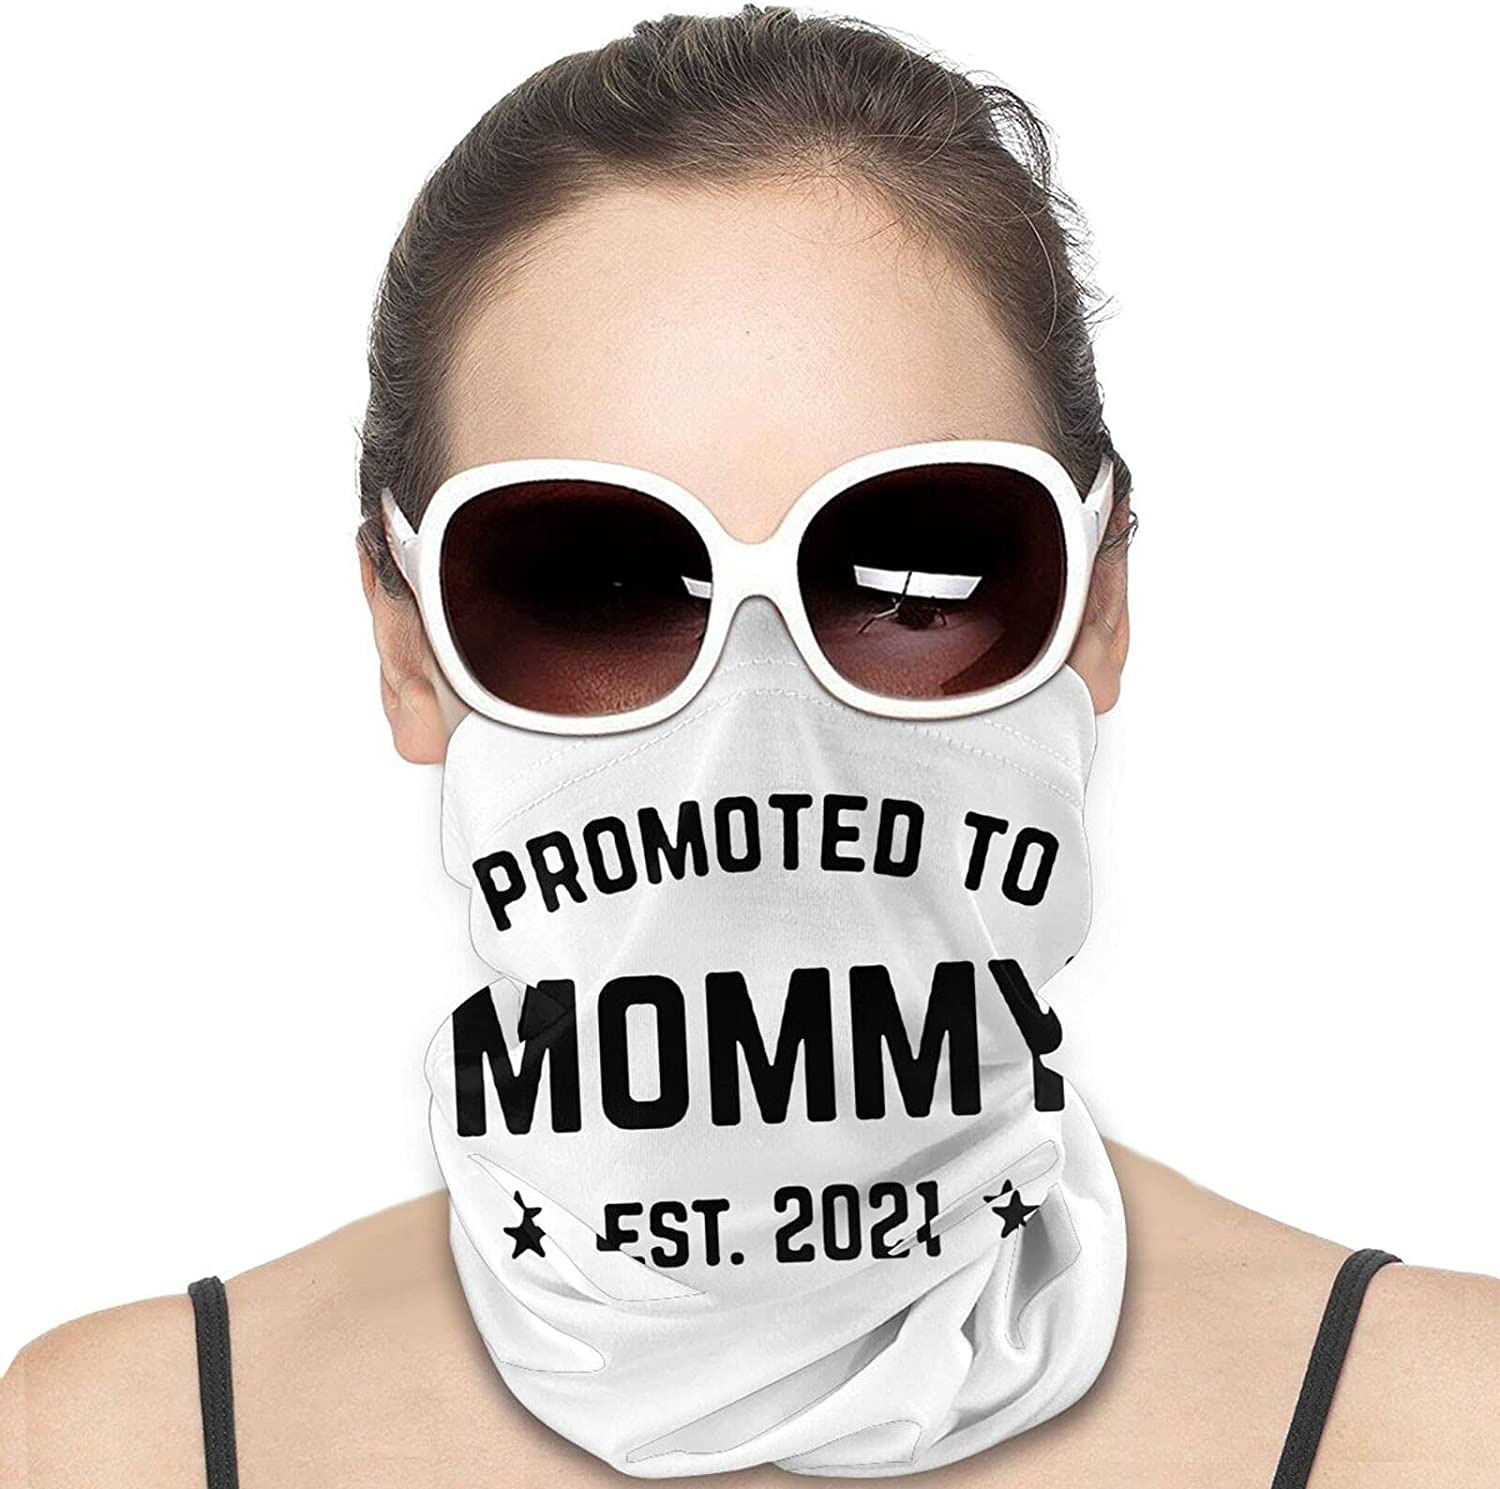 Soon to Be Mommy Est 2021 Round Neck Gaiter Bandnas Face Cover Uv Protection Prevent bask in Ice Scarf Headbands Perfect for Motorcycle Cycling Running Festival Raves Outdoors